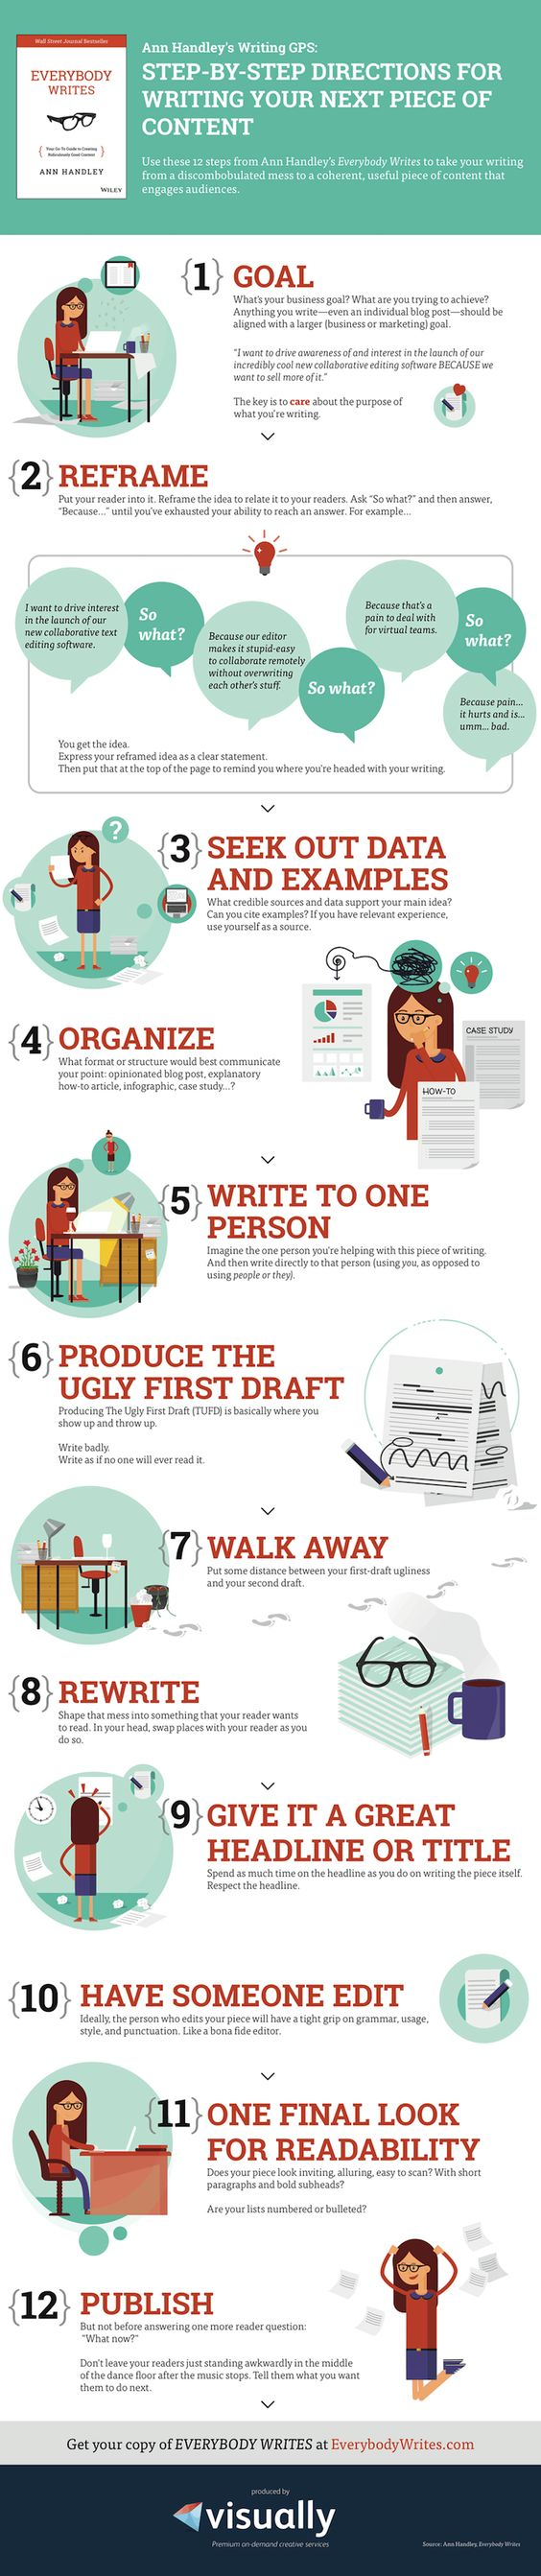 How to Create Useful Content: 12 Steps to Follow Every Time [Infographic]